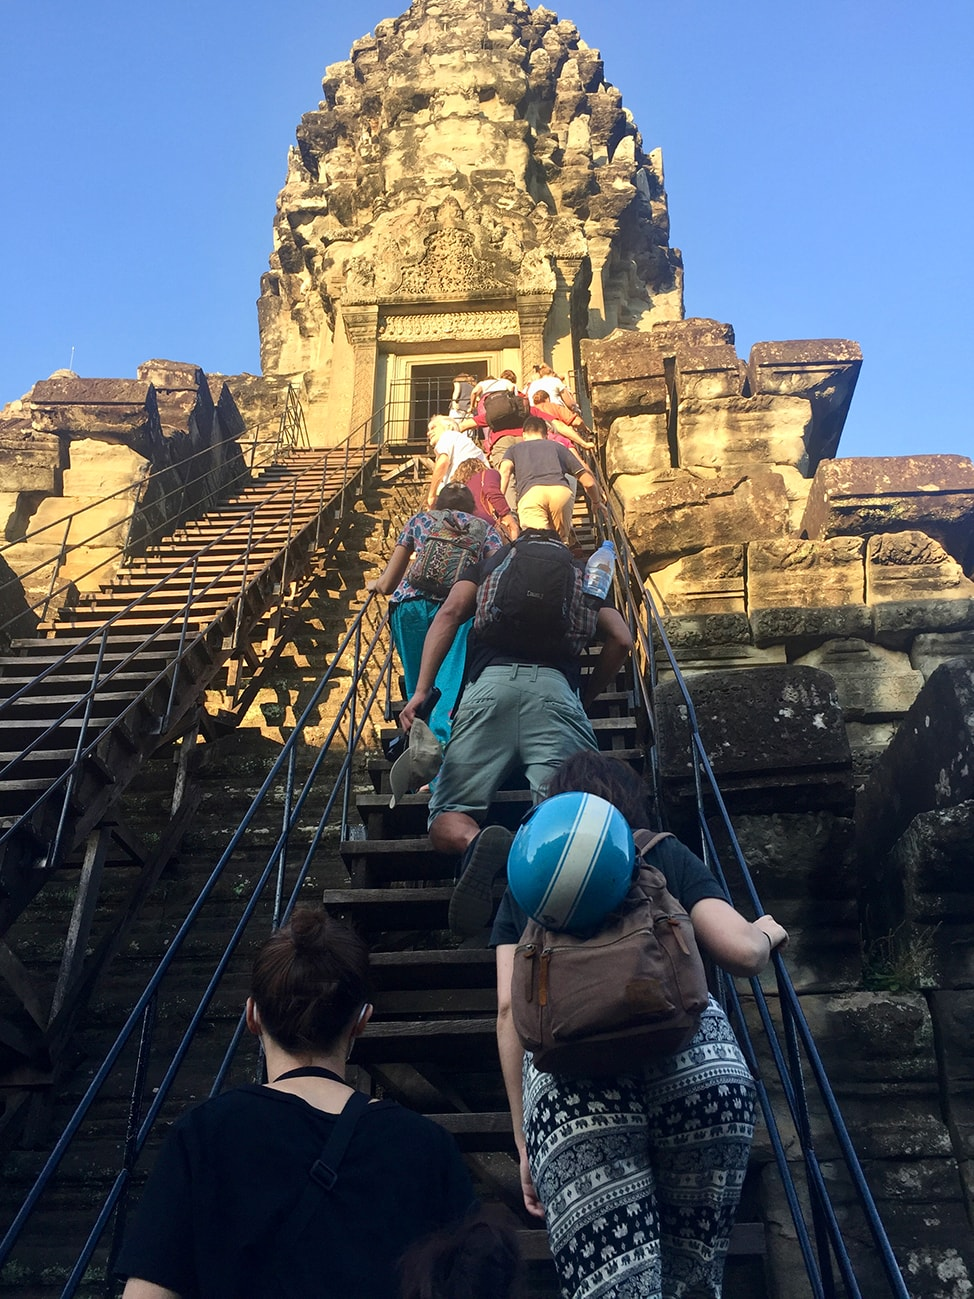 Image of the climb up to the Bakan section of Angkor Wat